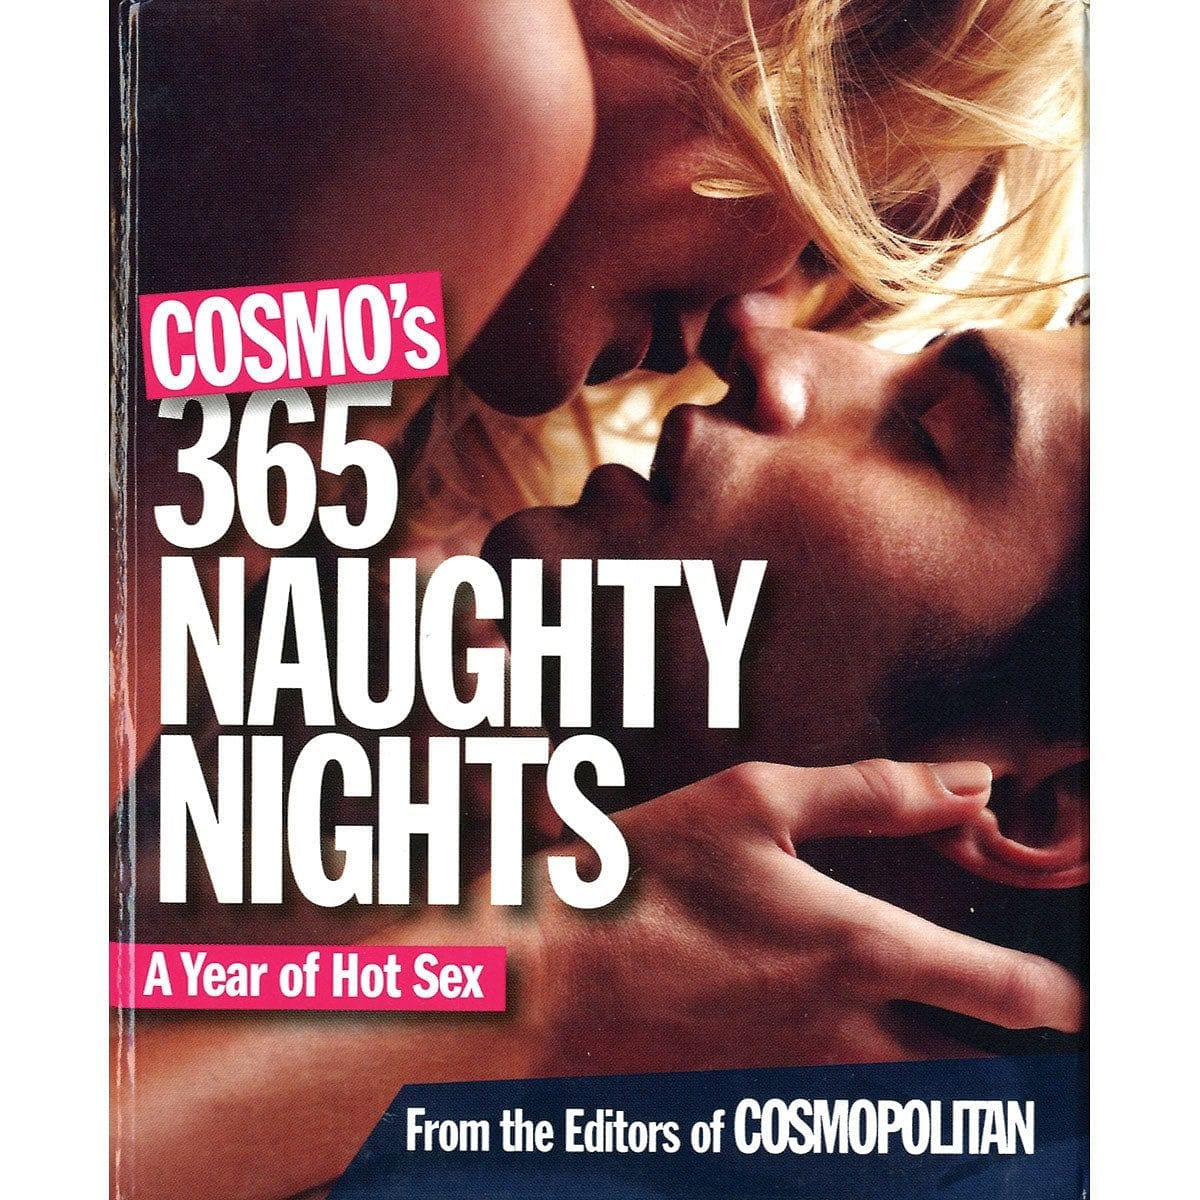 Cosmo's 365 Naughty Nights: A Year of Hot Sex by Hearst Books - rolik